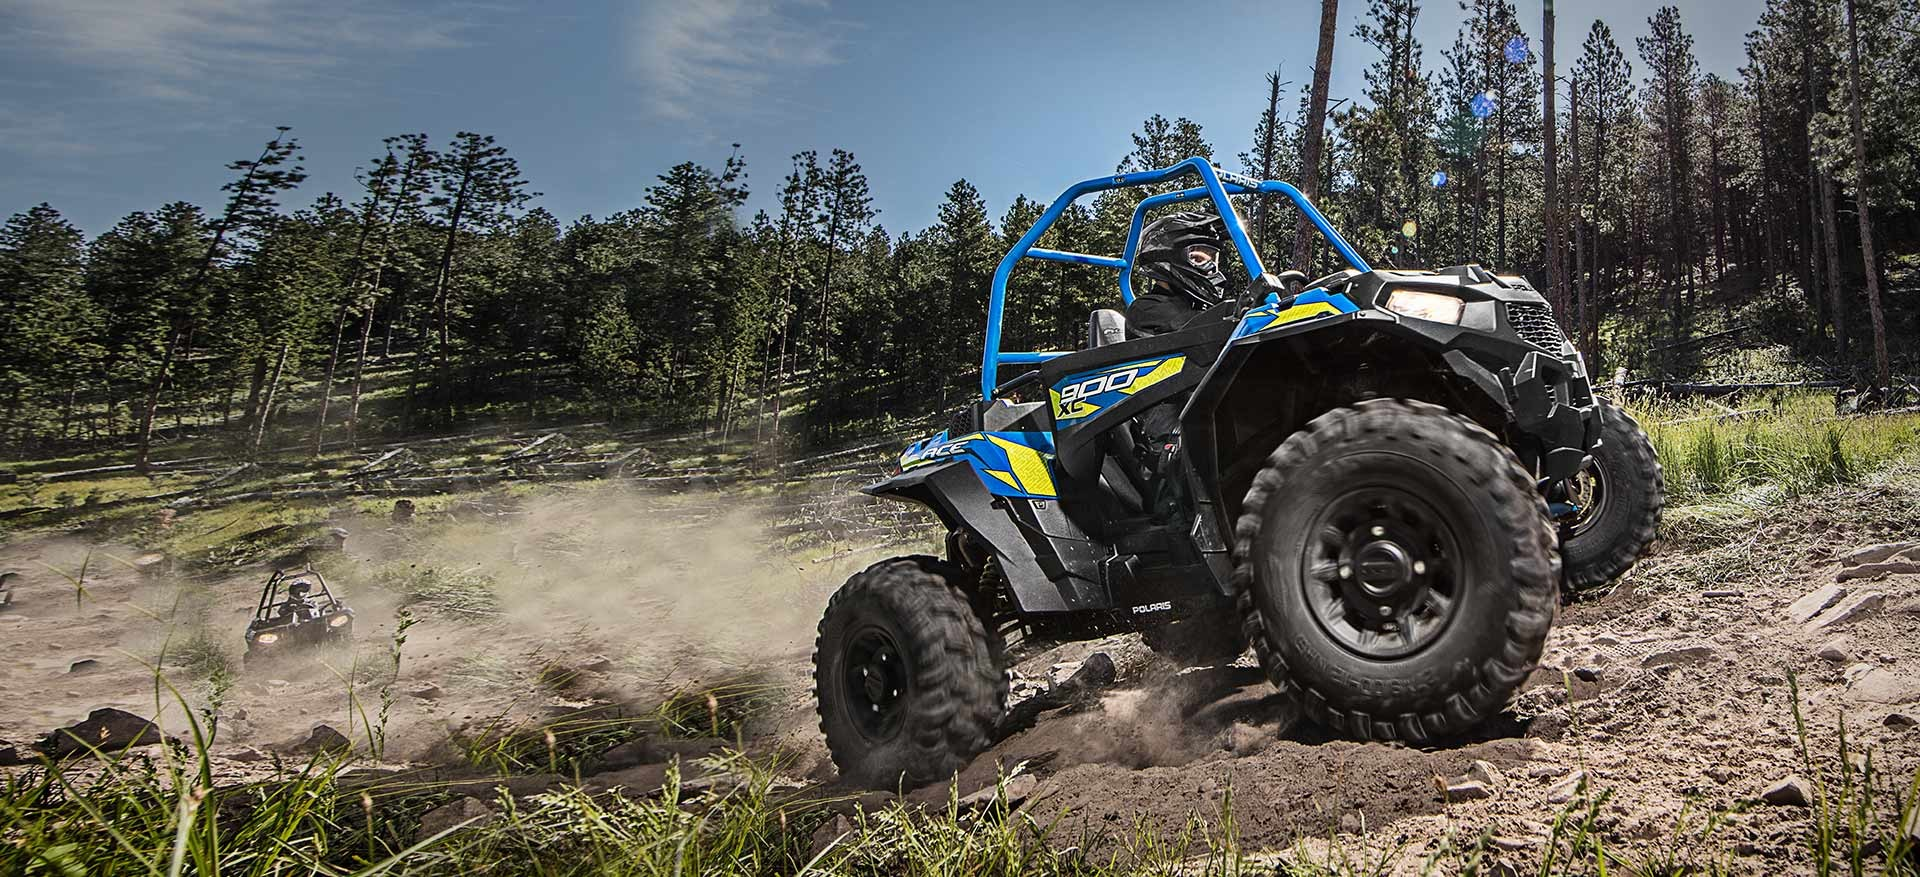 Wild West Motorsports Polaris ACE Offers